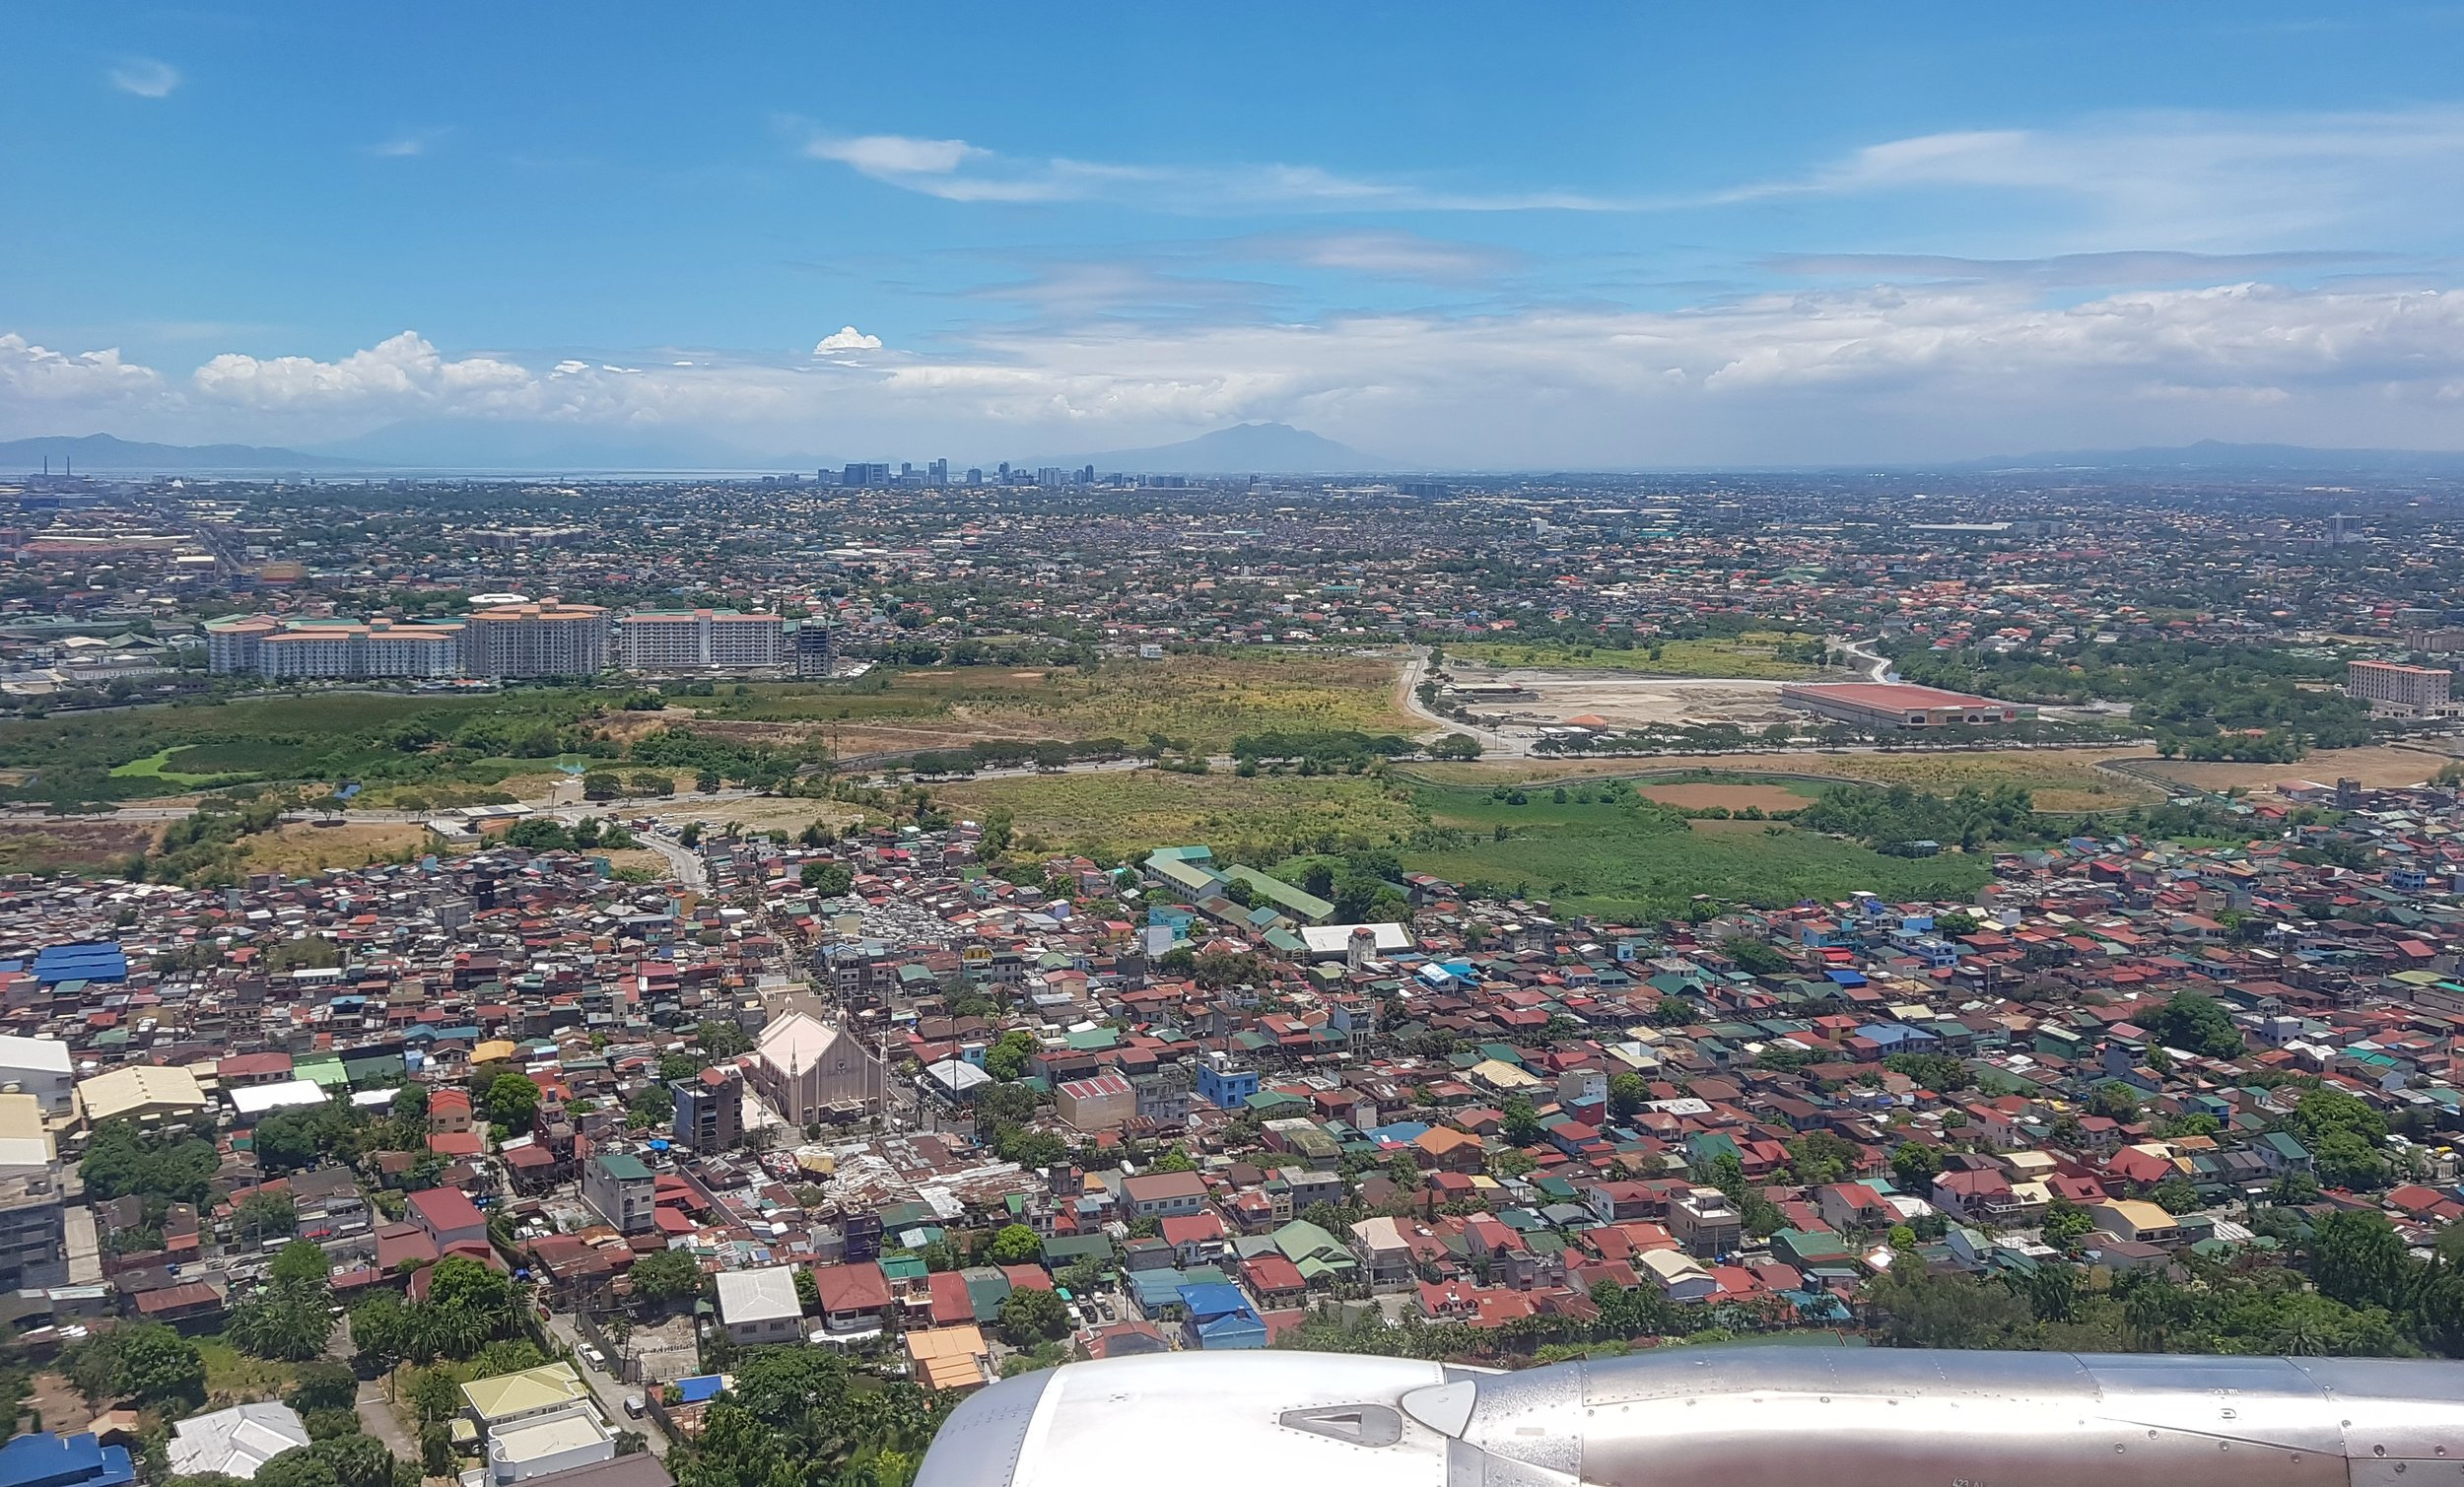 Approaching Manila International Airport